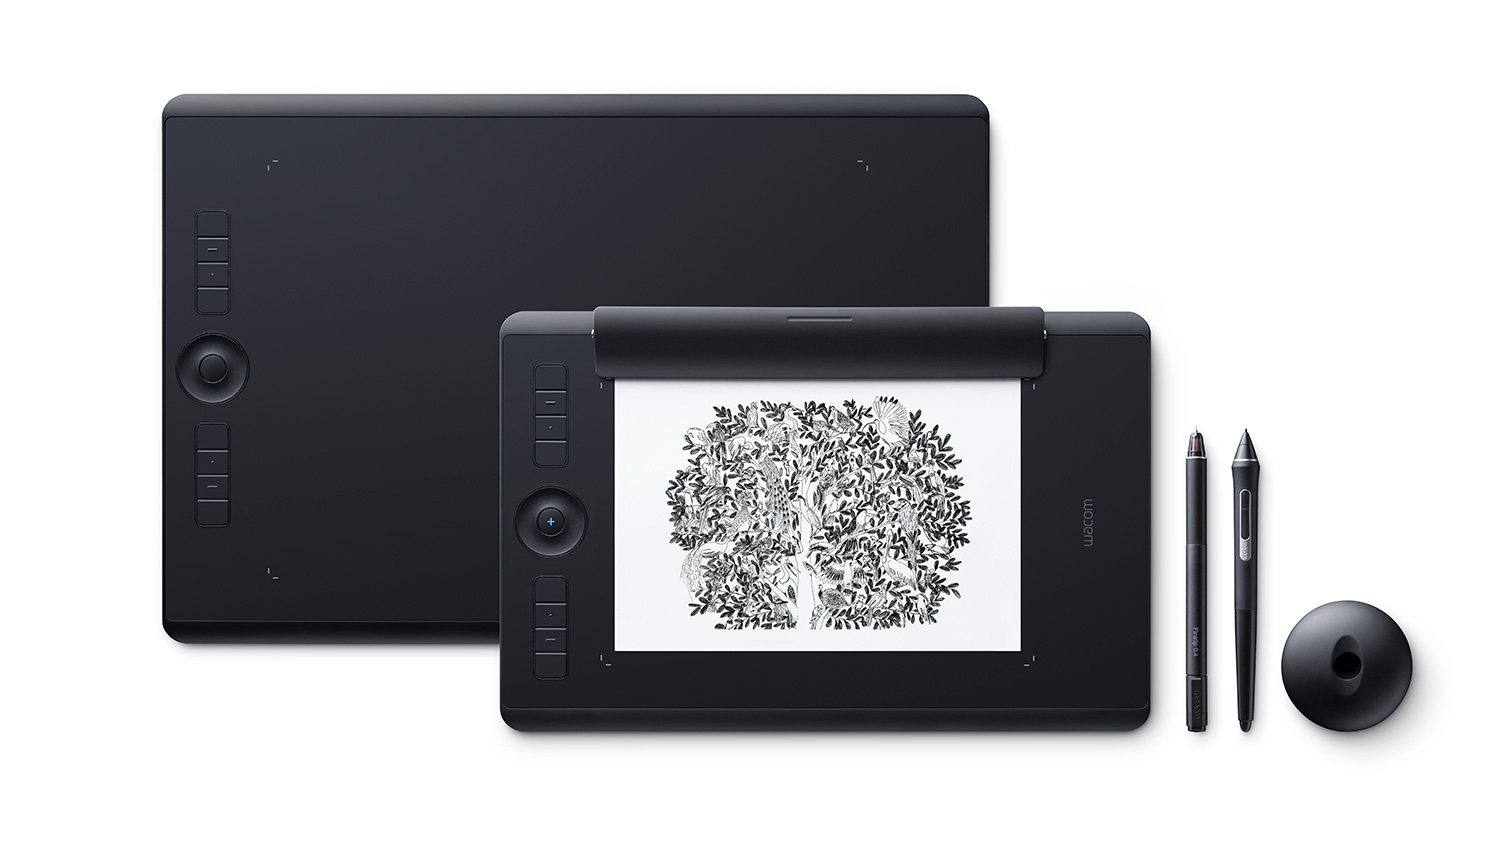 Wacom has a new Intuos Pro tablet - and there's a Paper